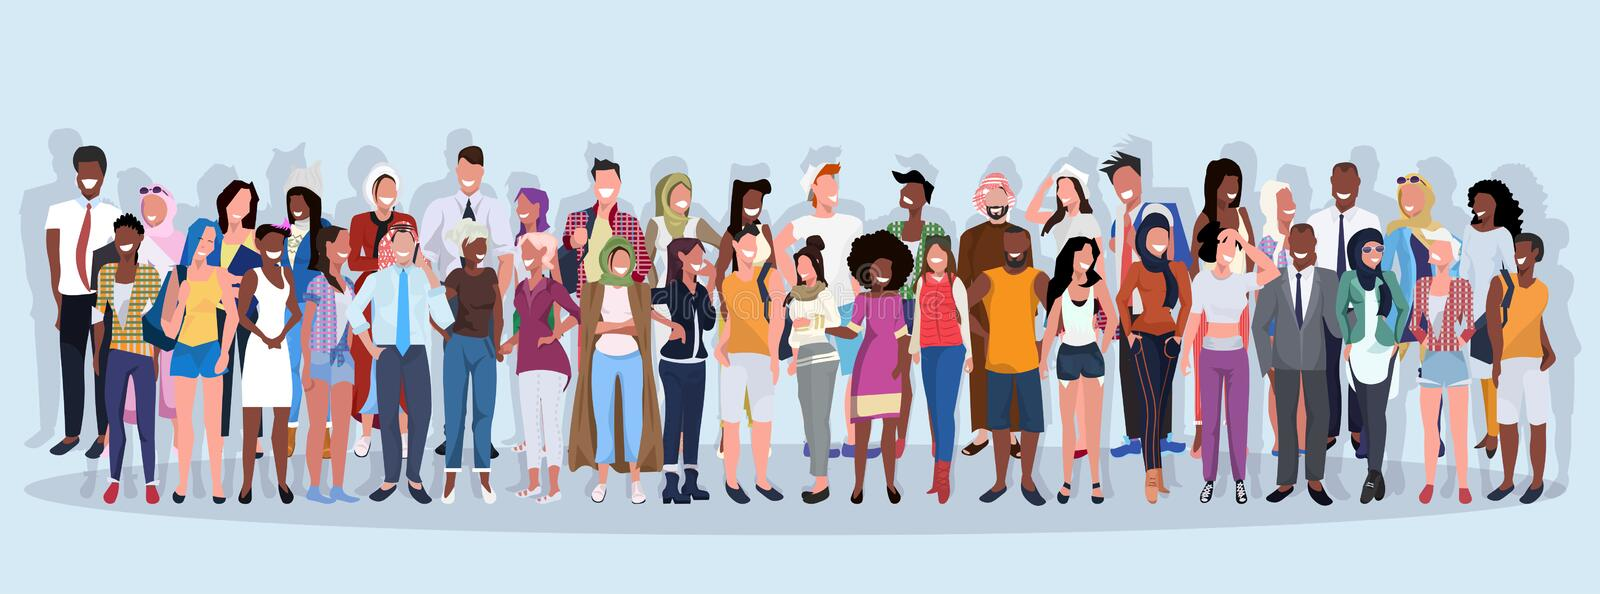 Mix race people group different occupation standing together over blue background male female workers full length stock illustration